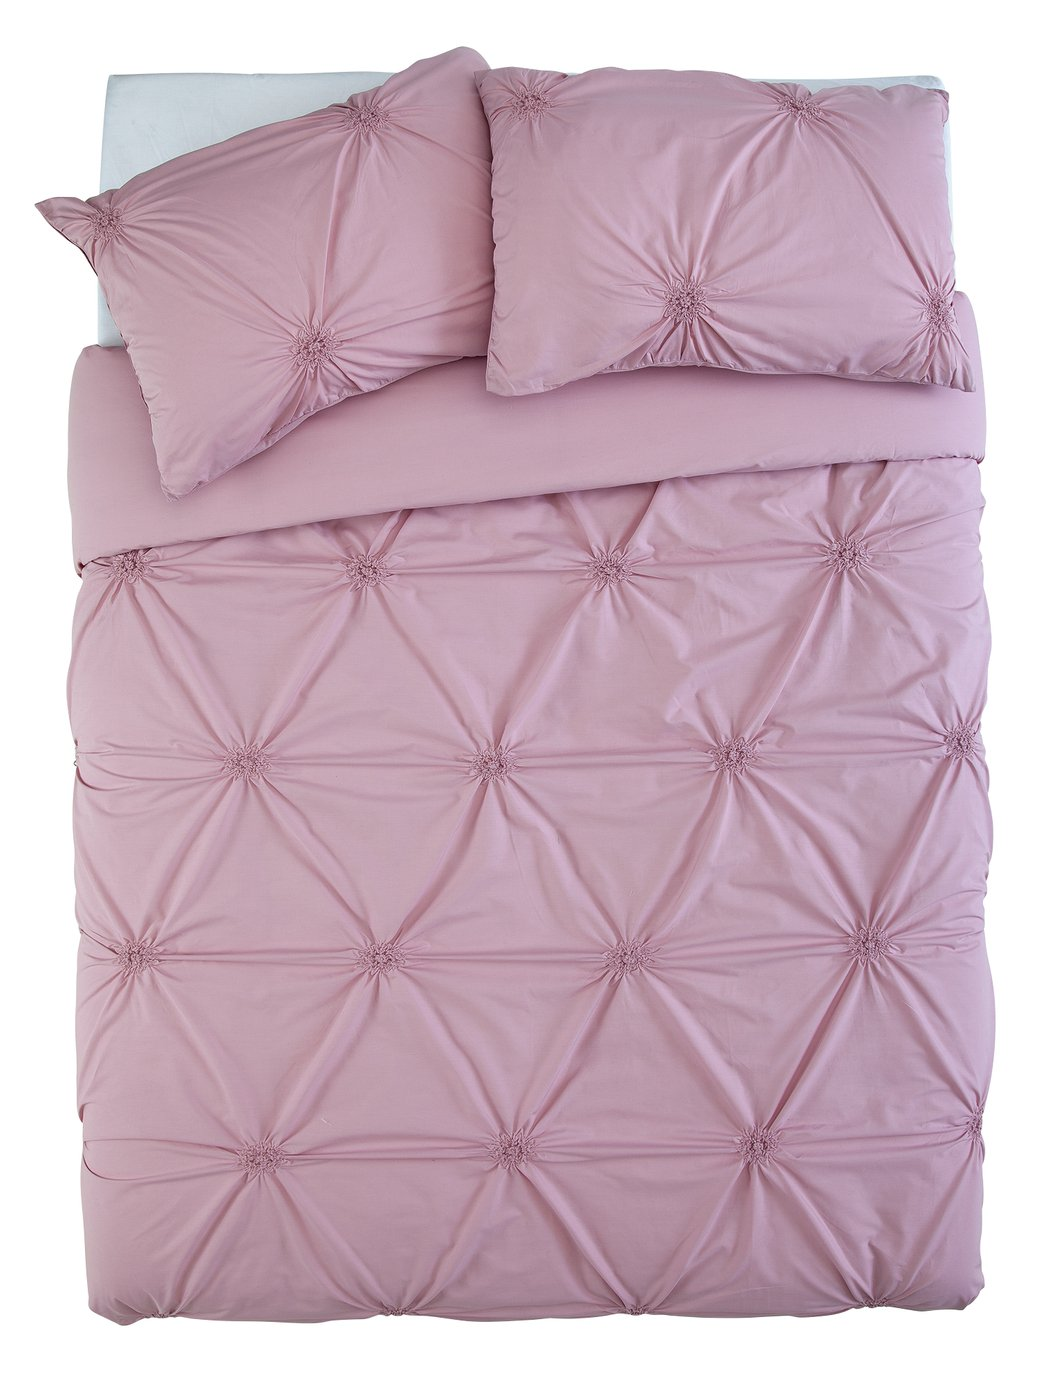 Sainsbury's Home Meadow Pink Ruched Bedding Set – Double